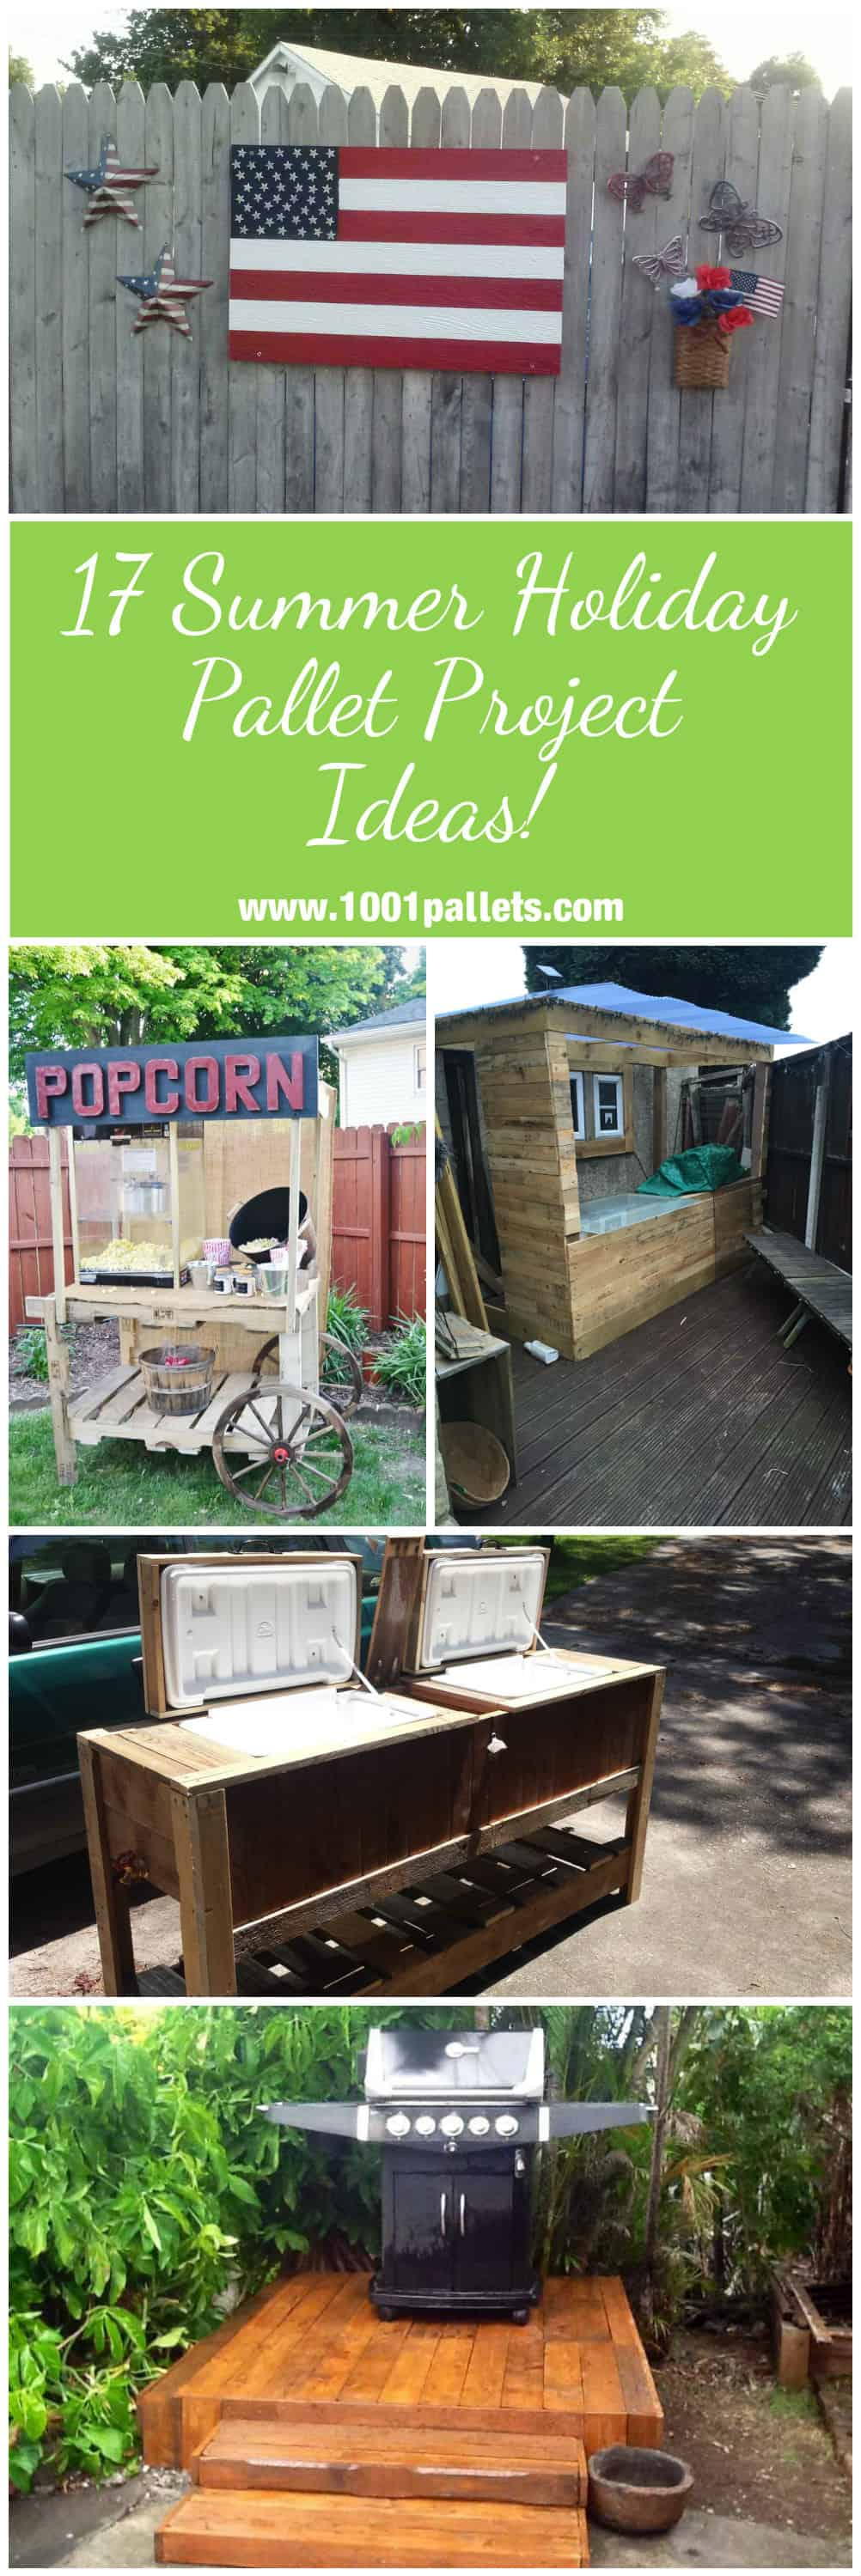 17 Summer Holiday Pallet Project Ideas 1001 Pallets